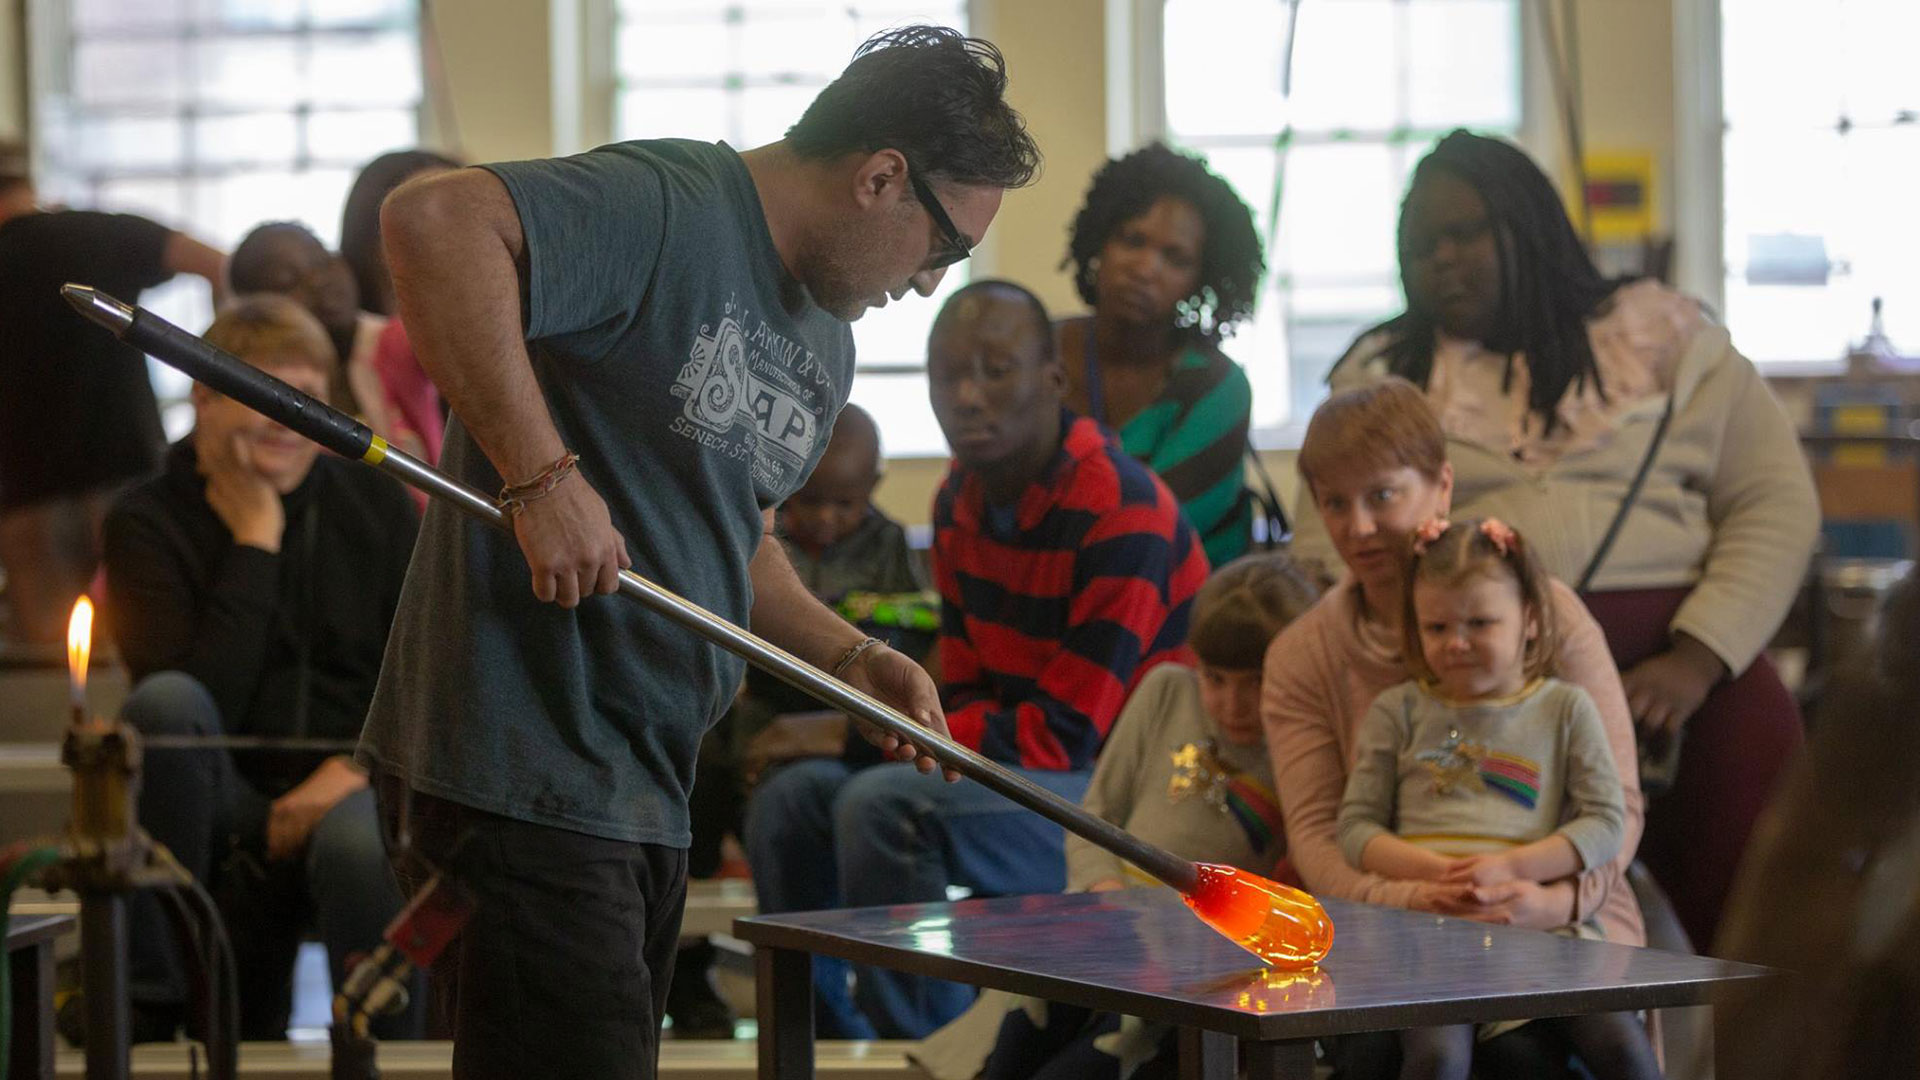 Hello Neighbor participants visit Pittsburgh Glass Center